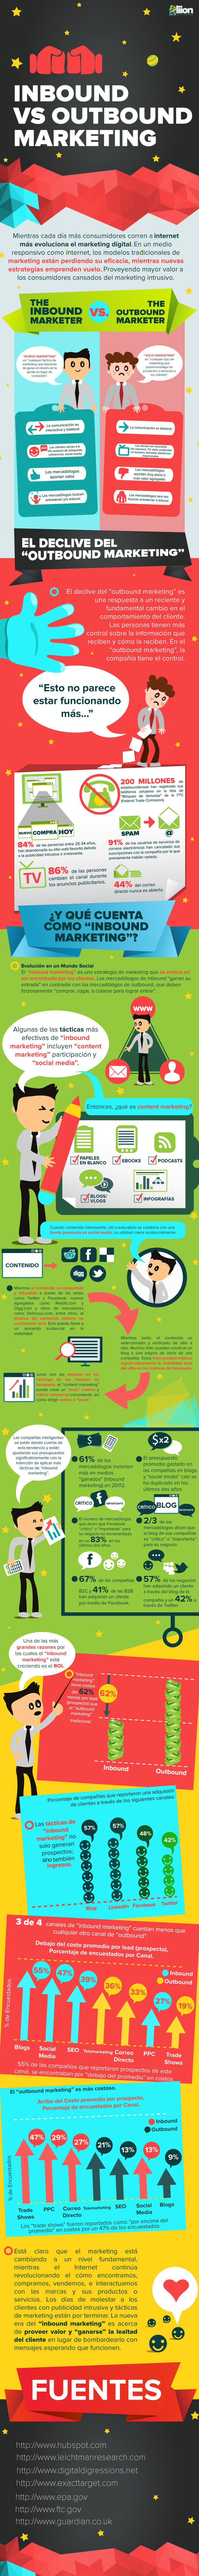 Inbound Marketing vs Outbound Marketing #infografia #infographic #marketing